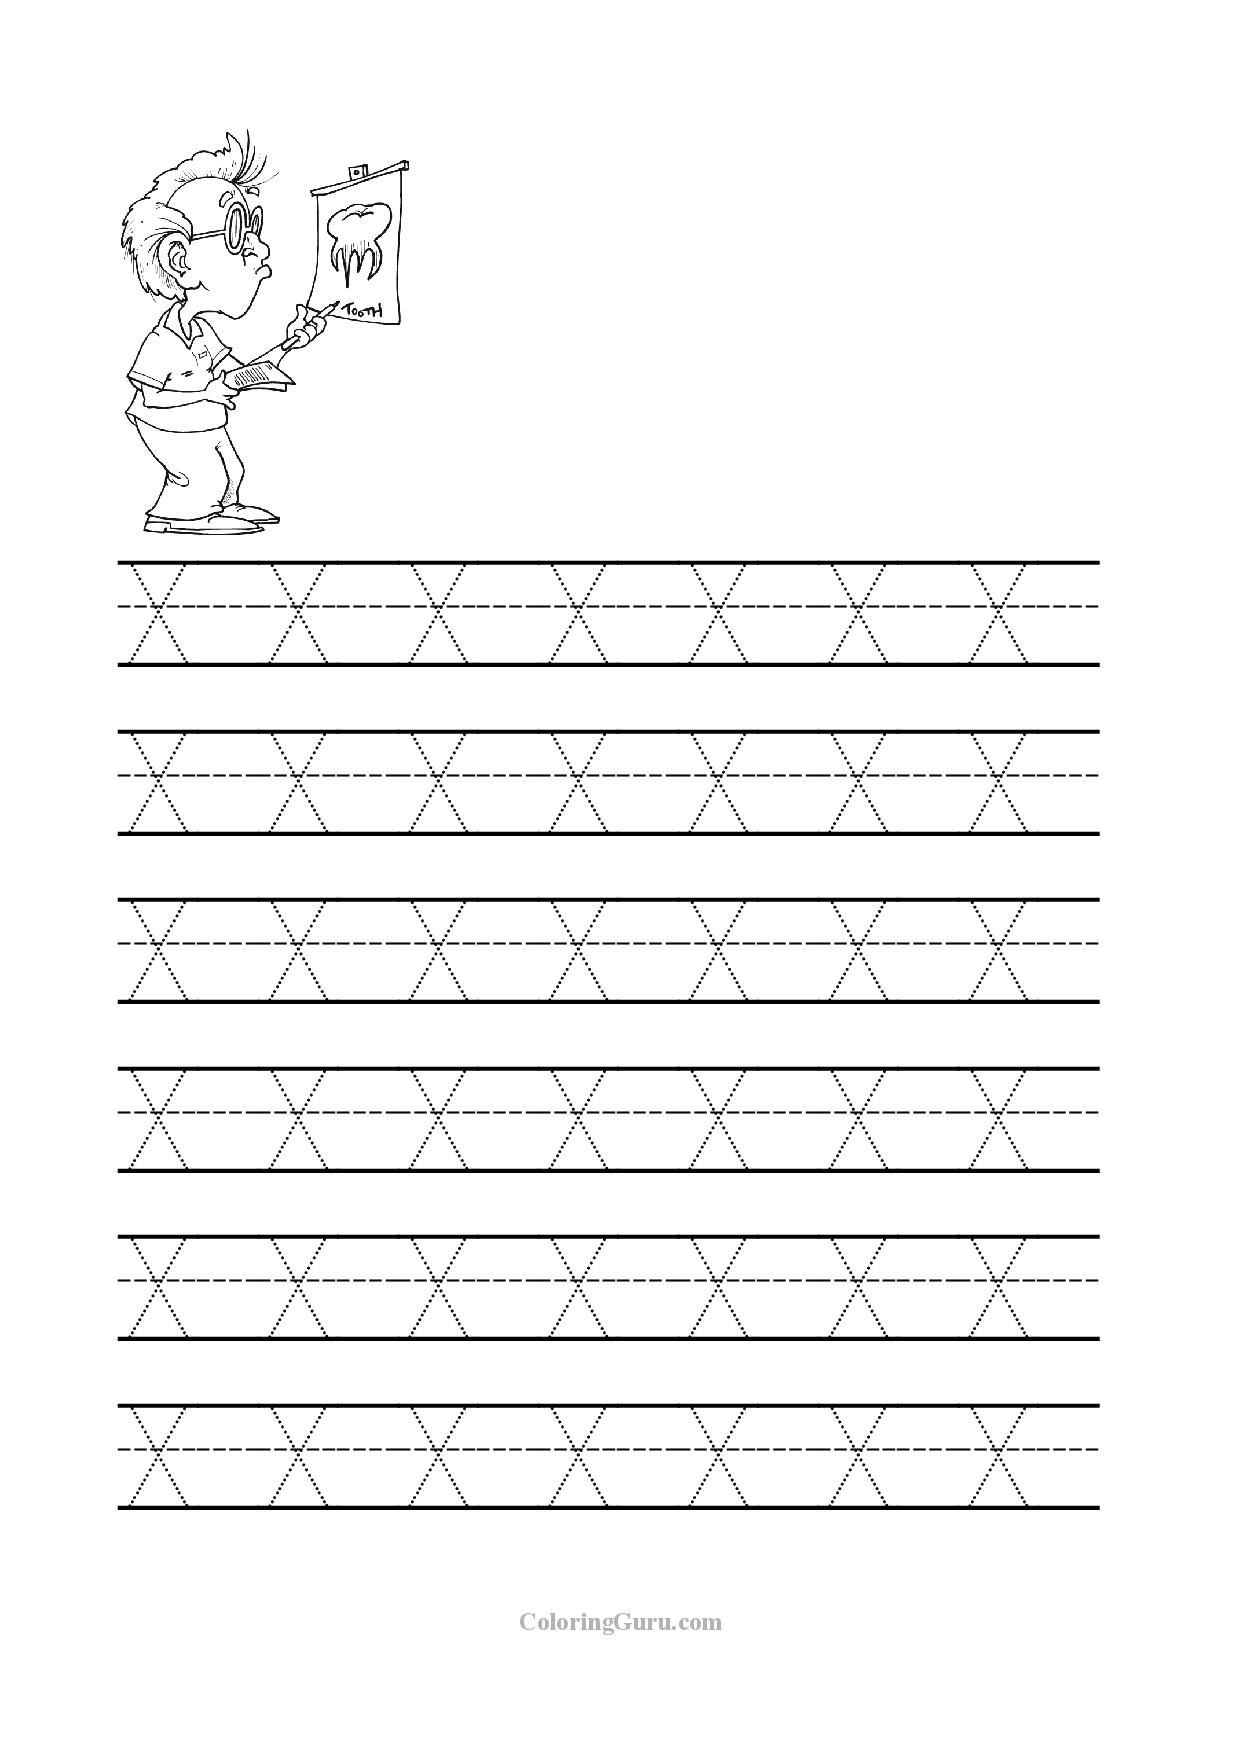 Free Printable Tracing Letter X Worksheets For Preschool with regard to Letter X Tracing Worksheets Preschool